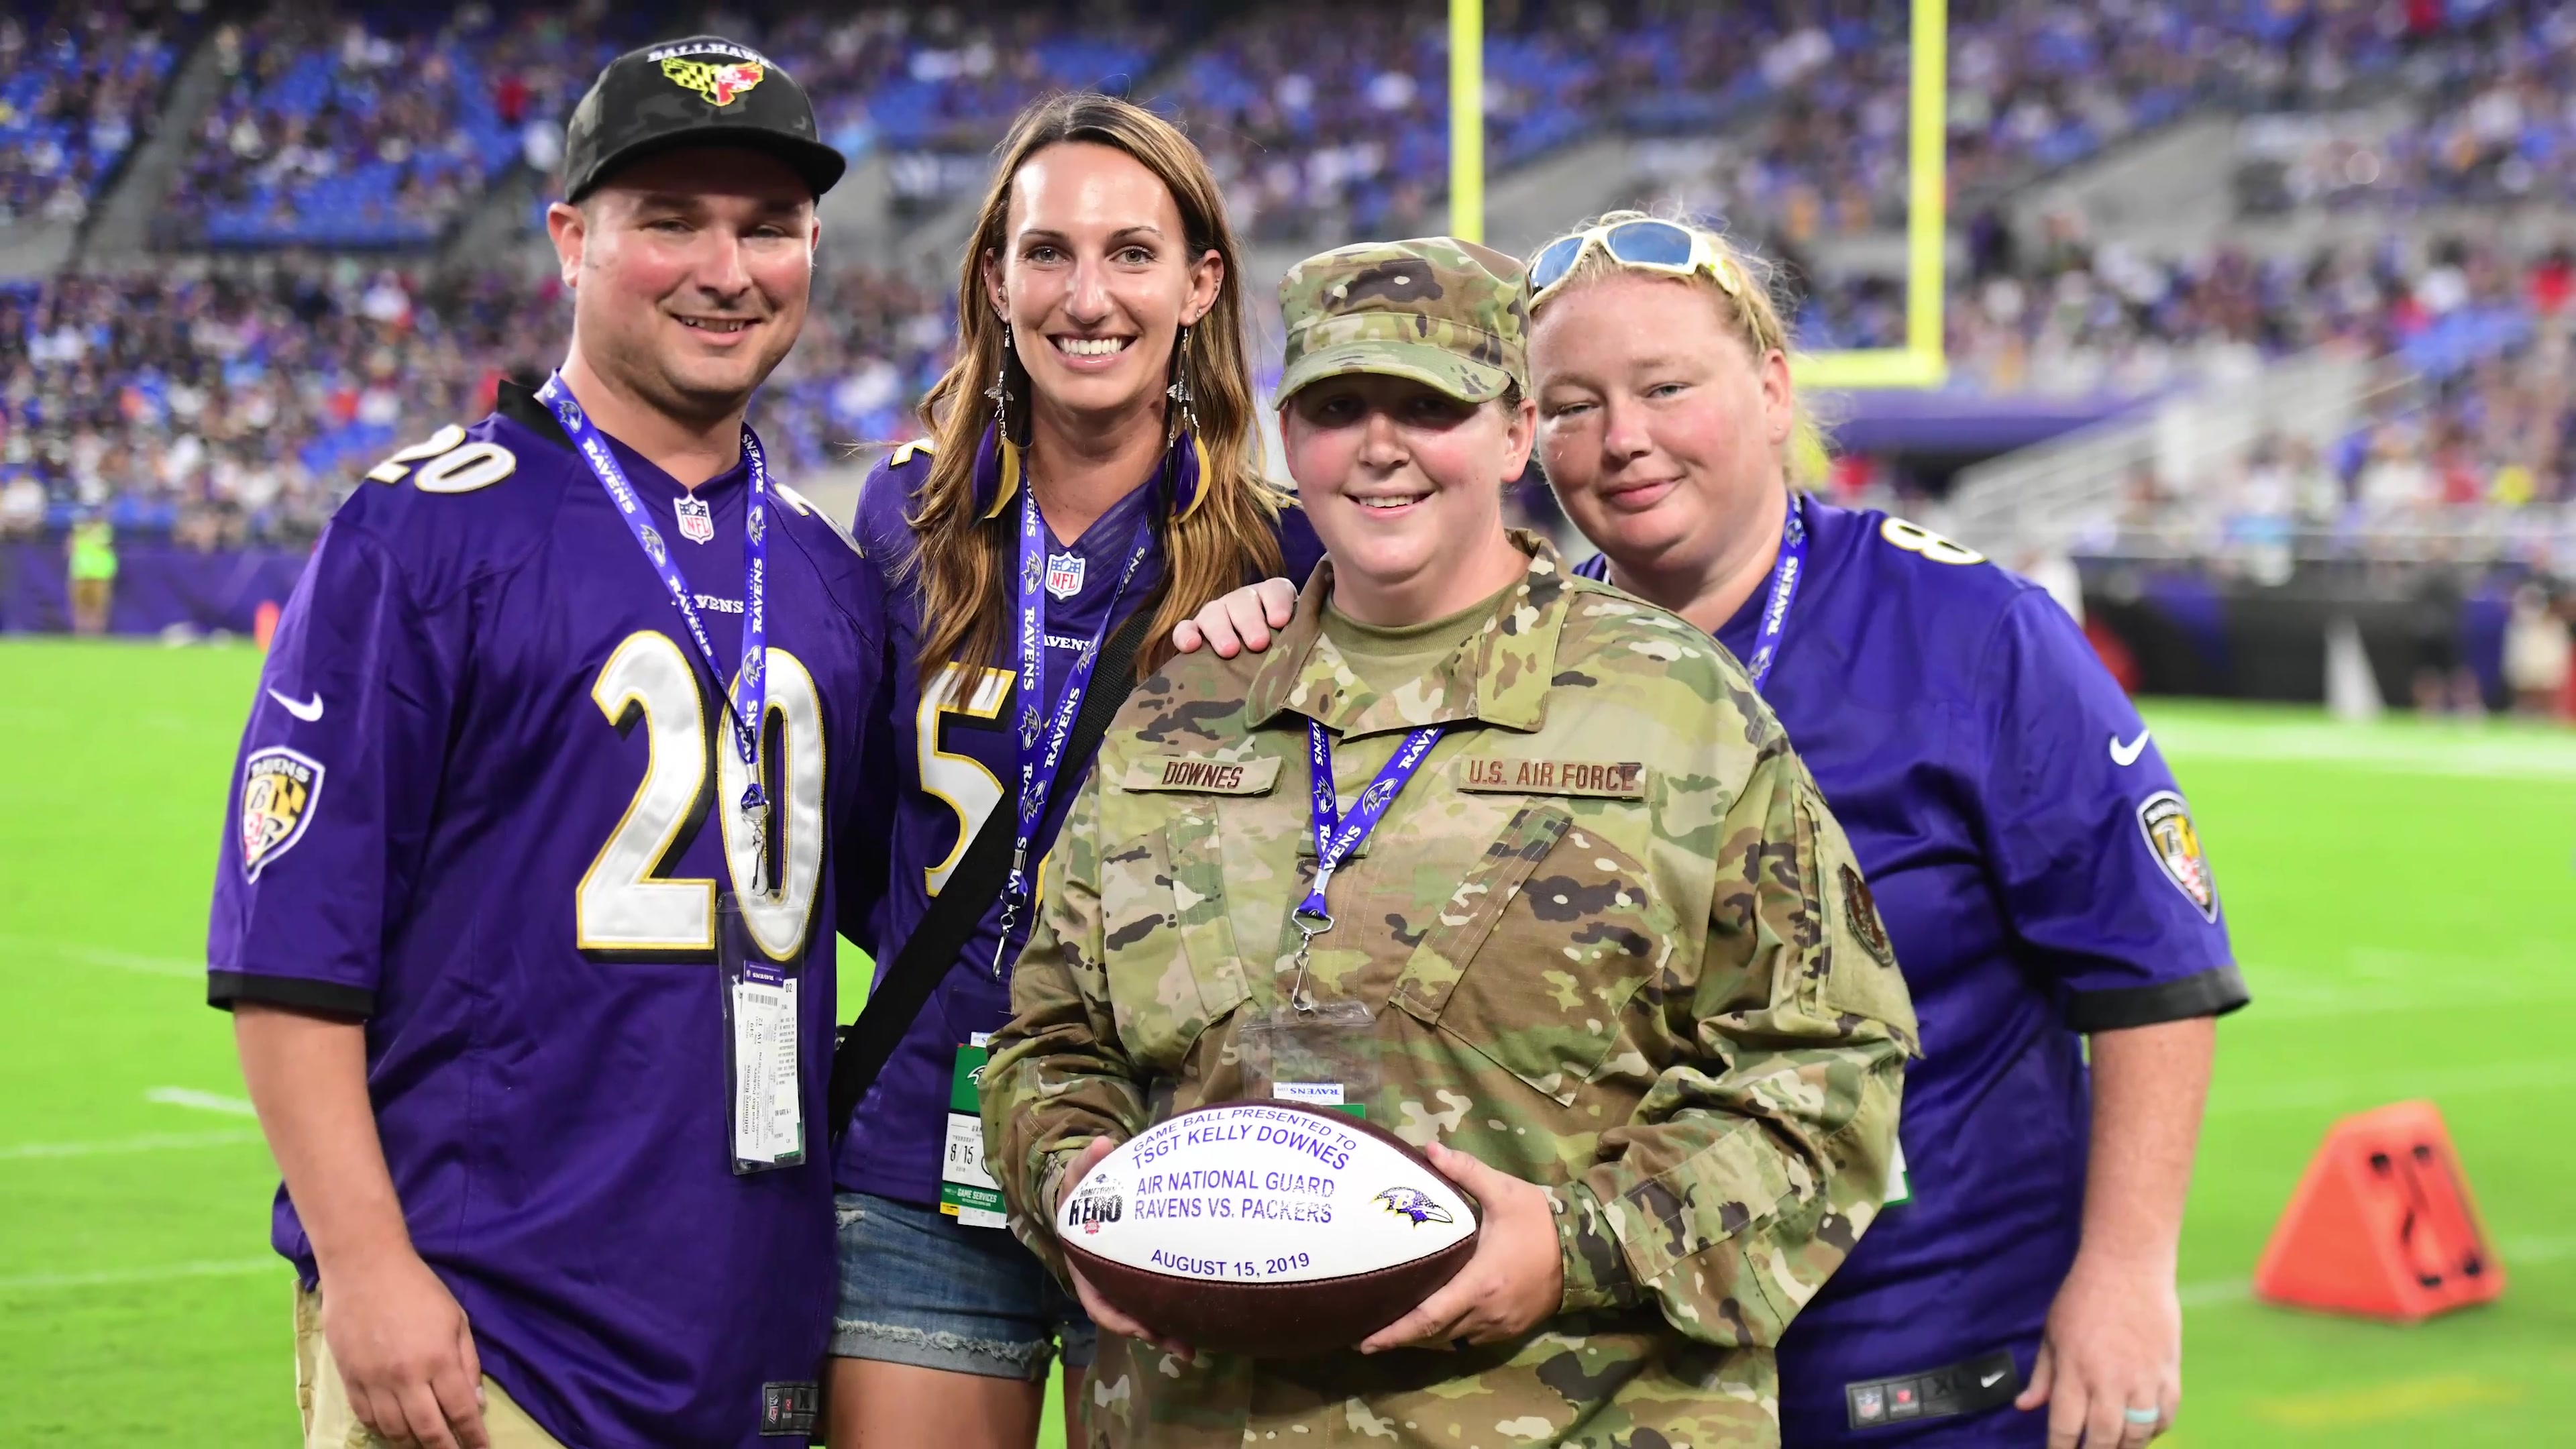 D.C. Air National Guard Tech. Sgt. Downes recognized as Hometown Hero by Baltimore Ravens